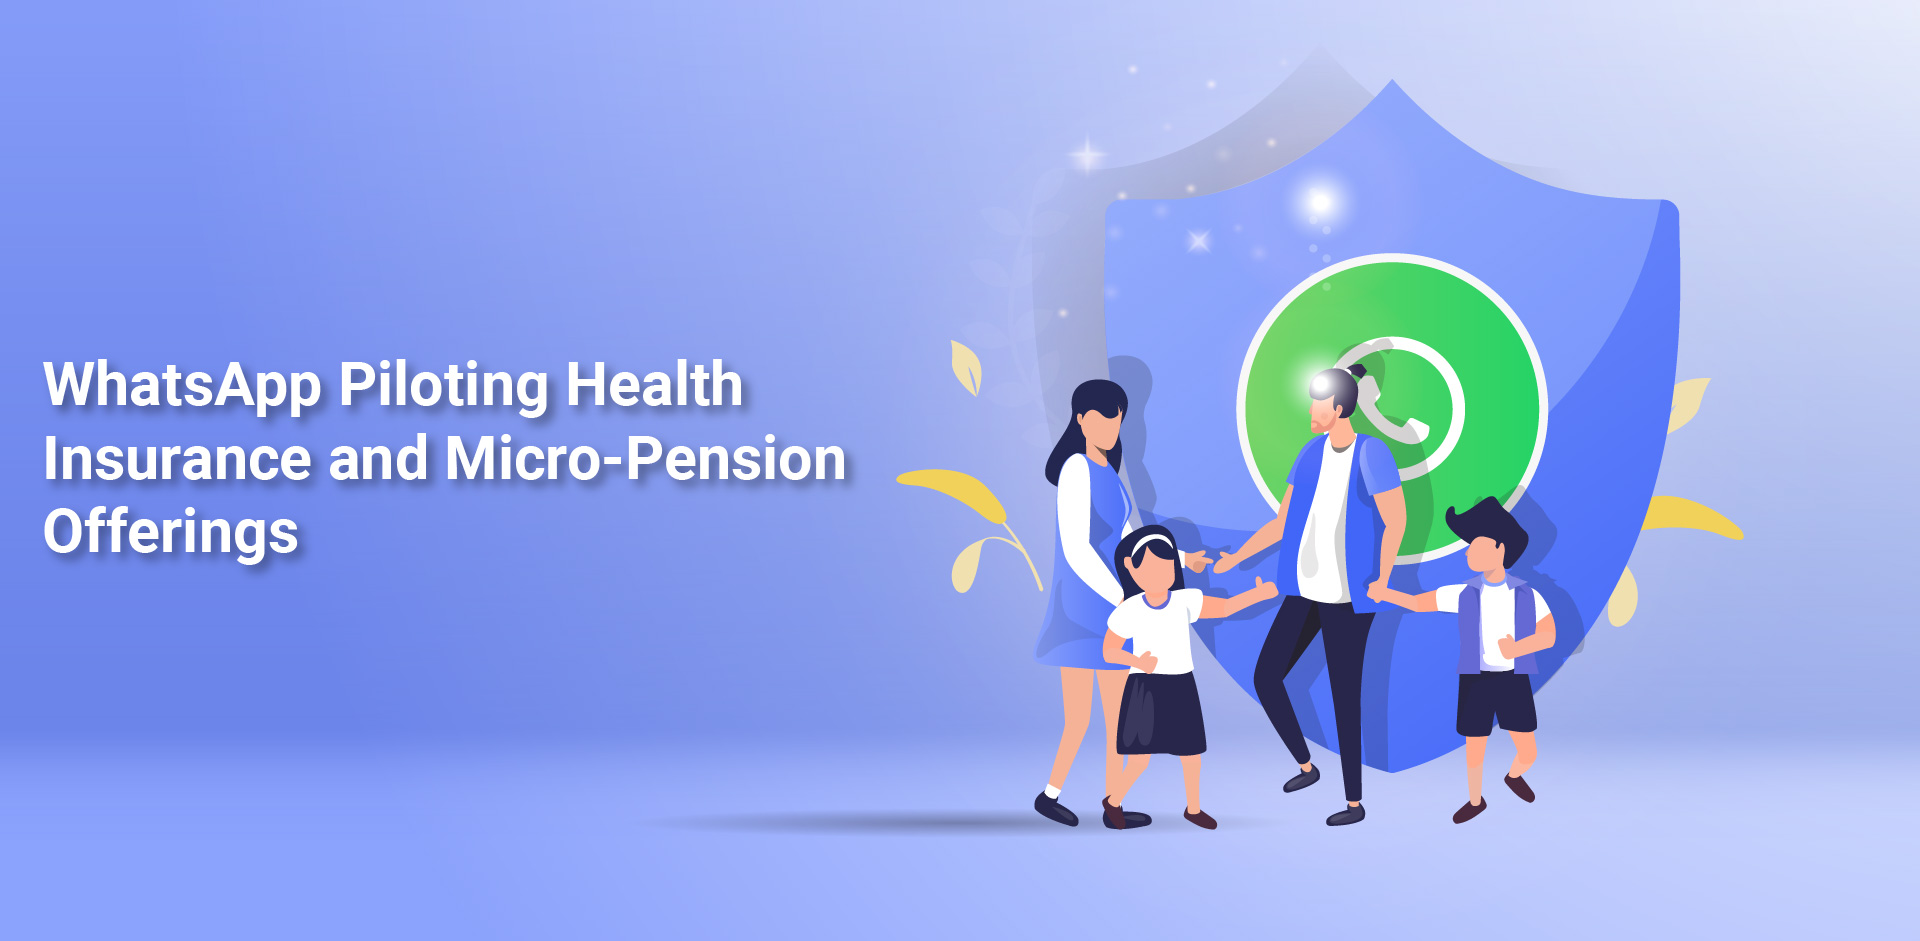 WhatsApp Piloting Health Insurance and Micro-Pension Offerings